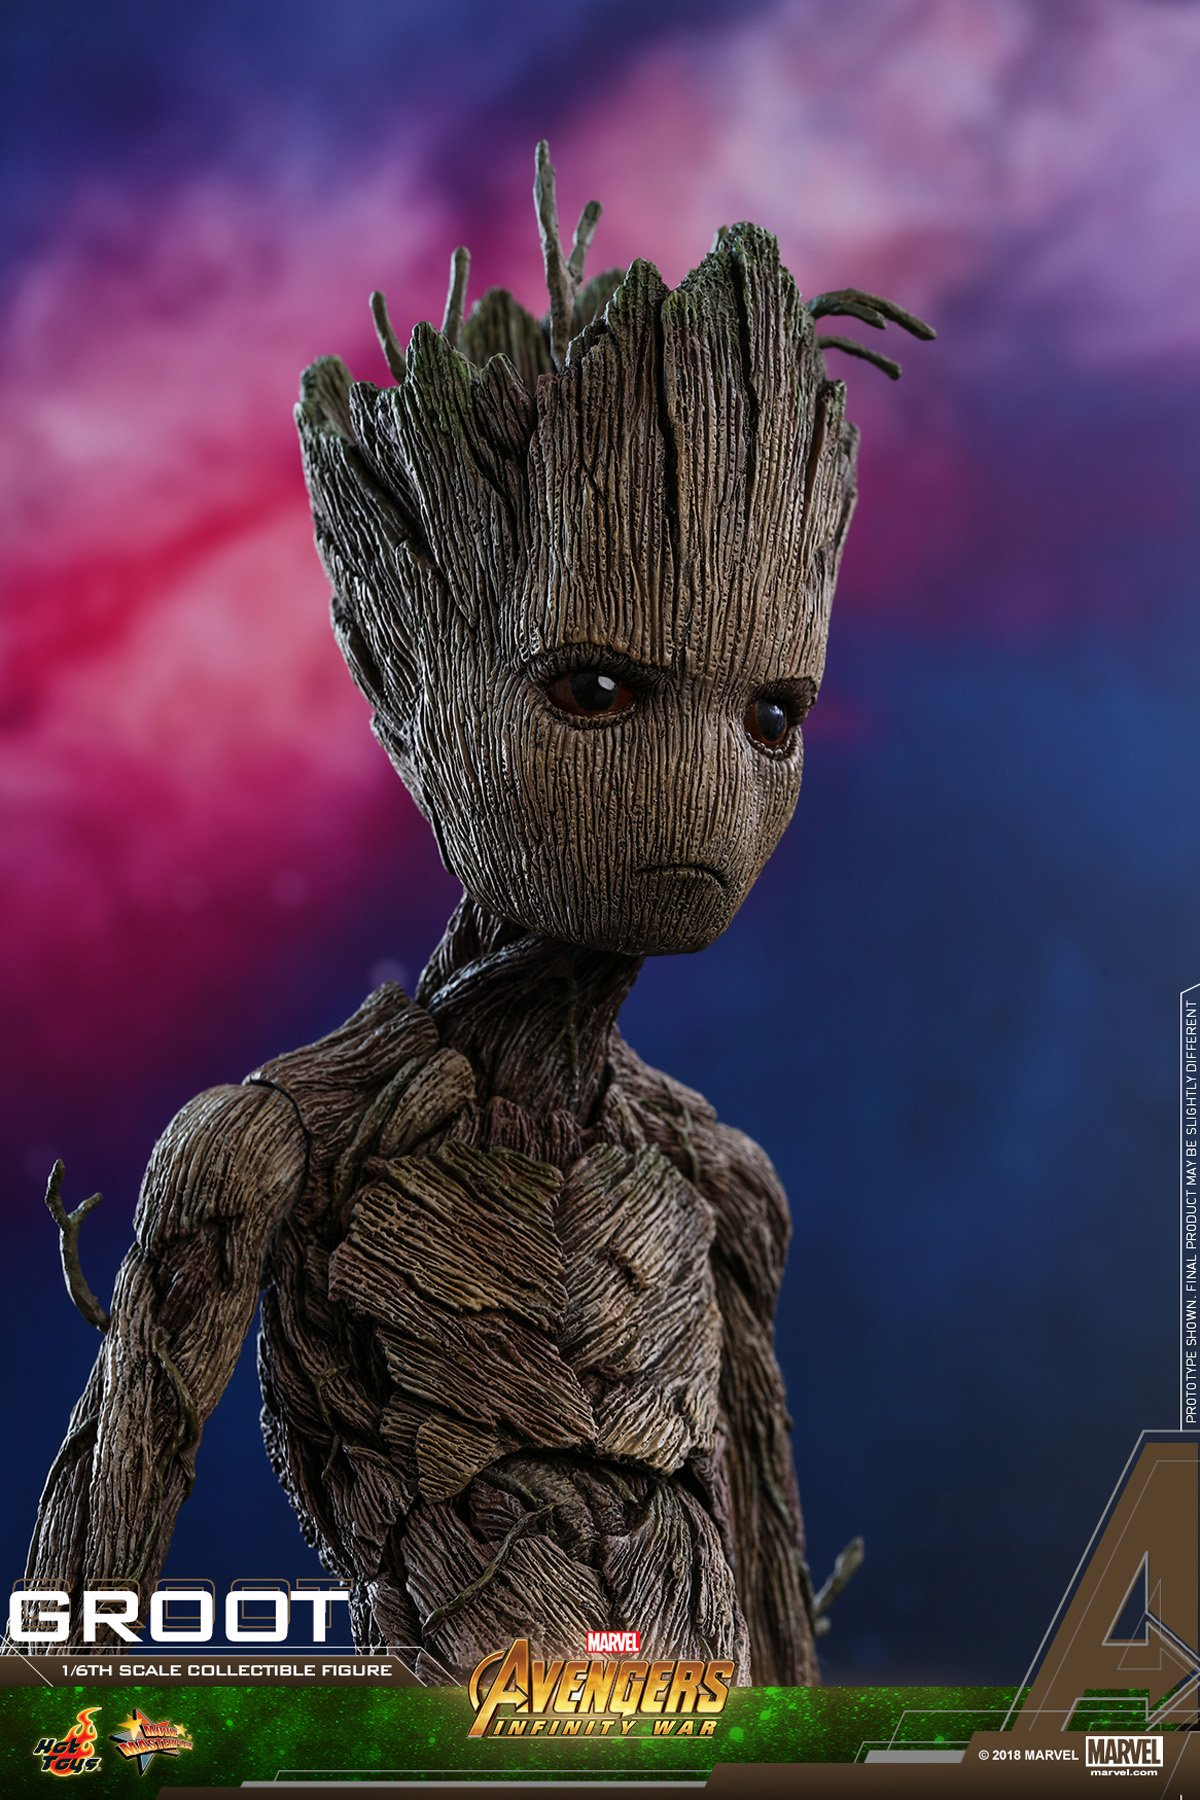 hot-toys-aiw-groot-collectible-figure_pr9